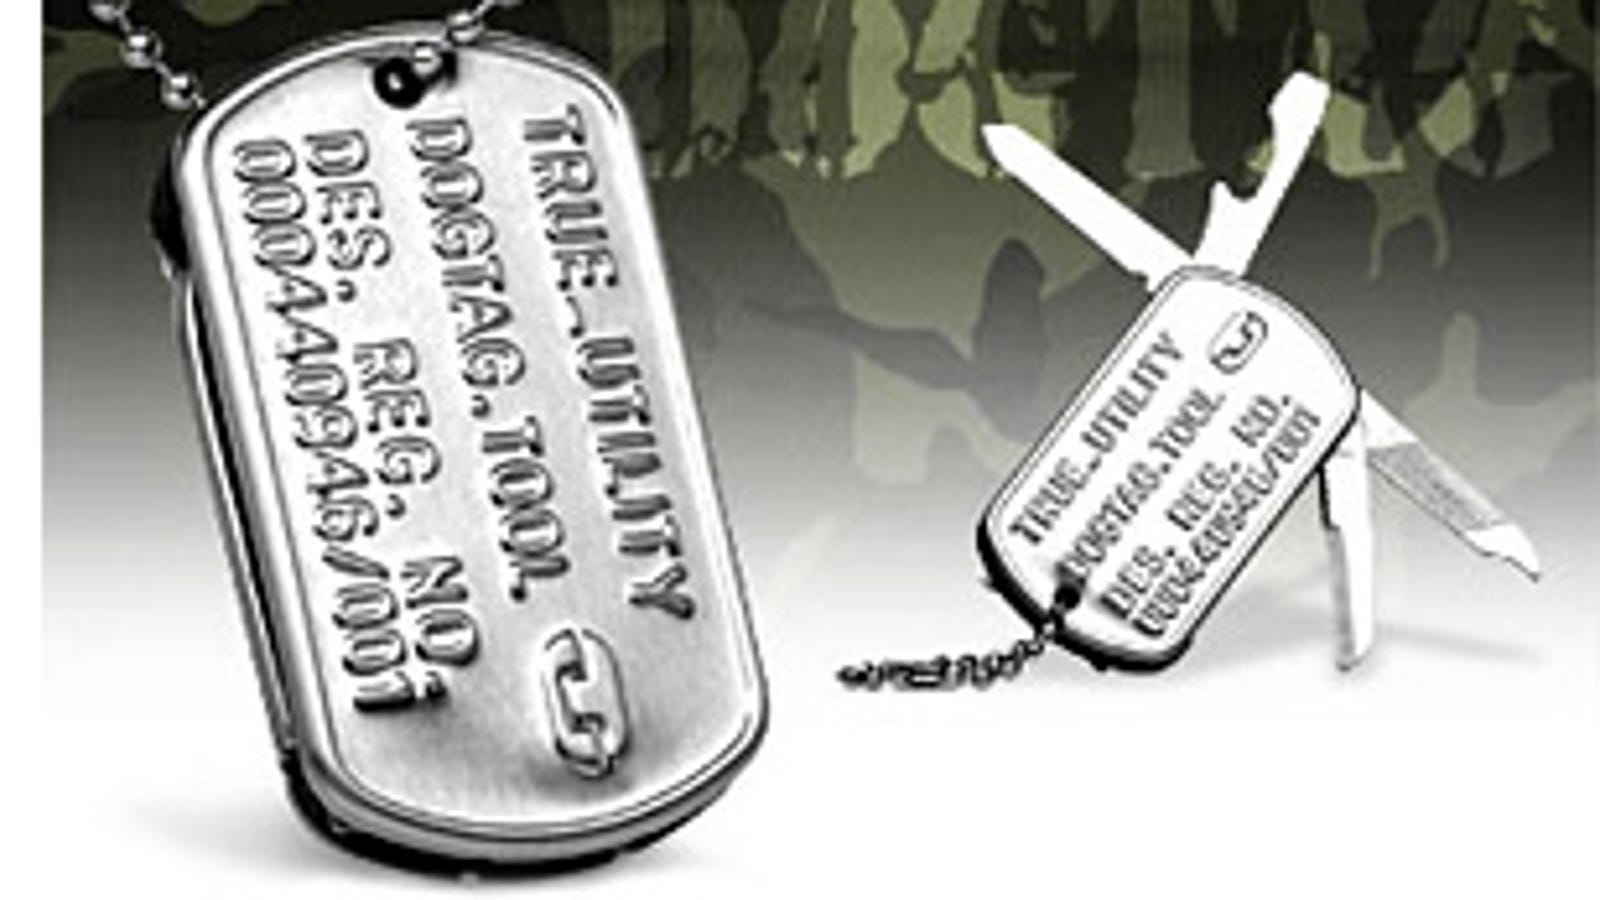 Tool Tags: Dog Tag Multi-Tool, Now 100-Percent More Trendy